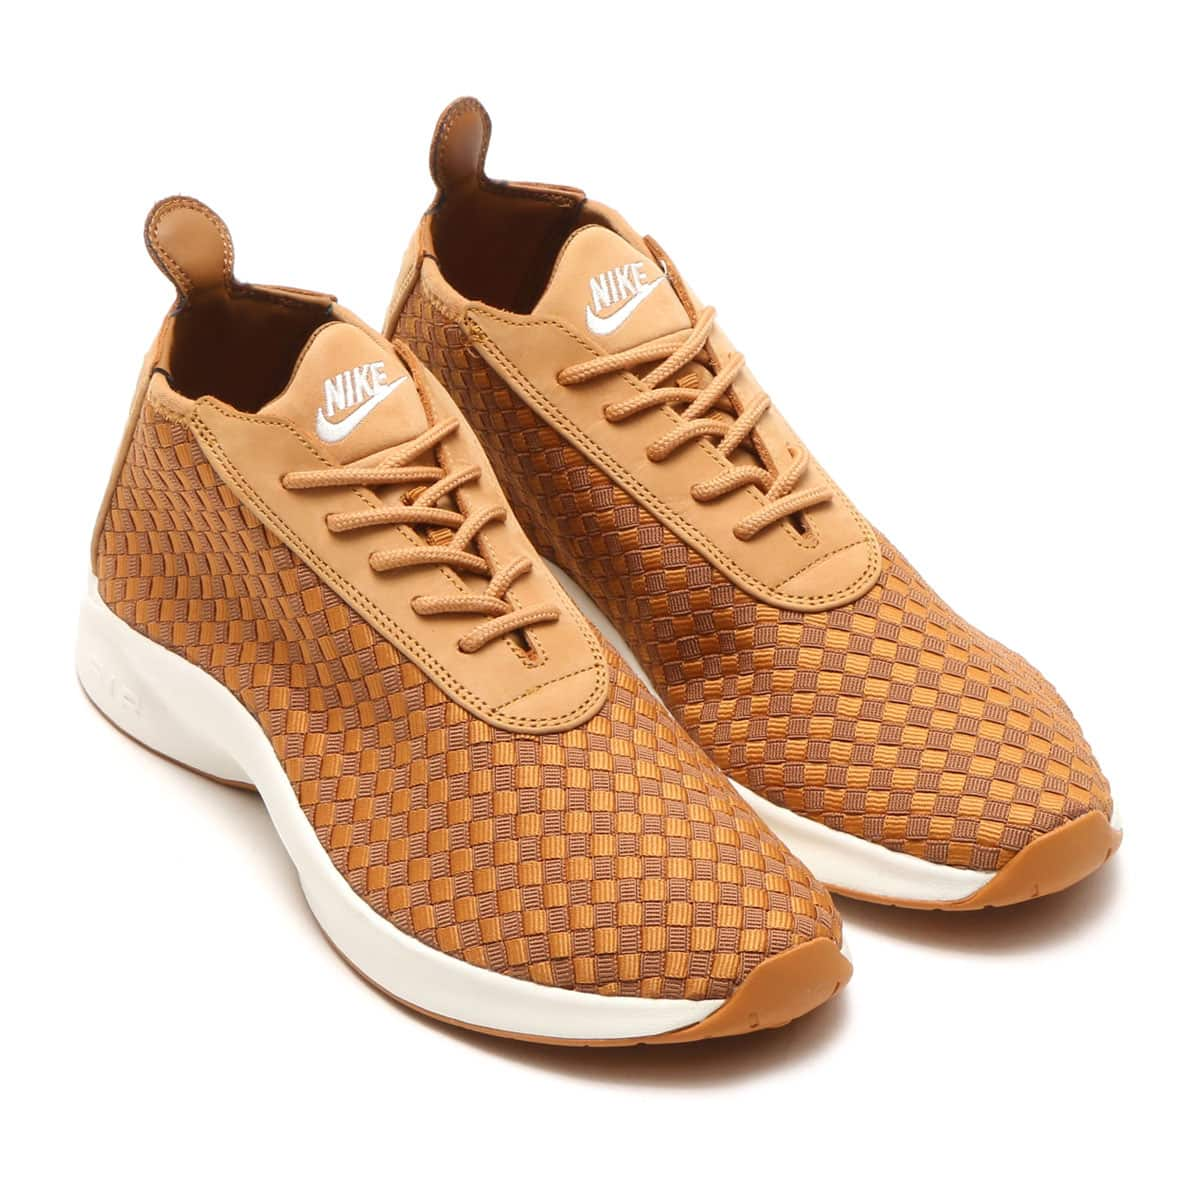 NIKE AIR WOVEN BOOT FLAX/ALE BROWN-SAIL-GUM MED BROWN_photo_large